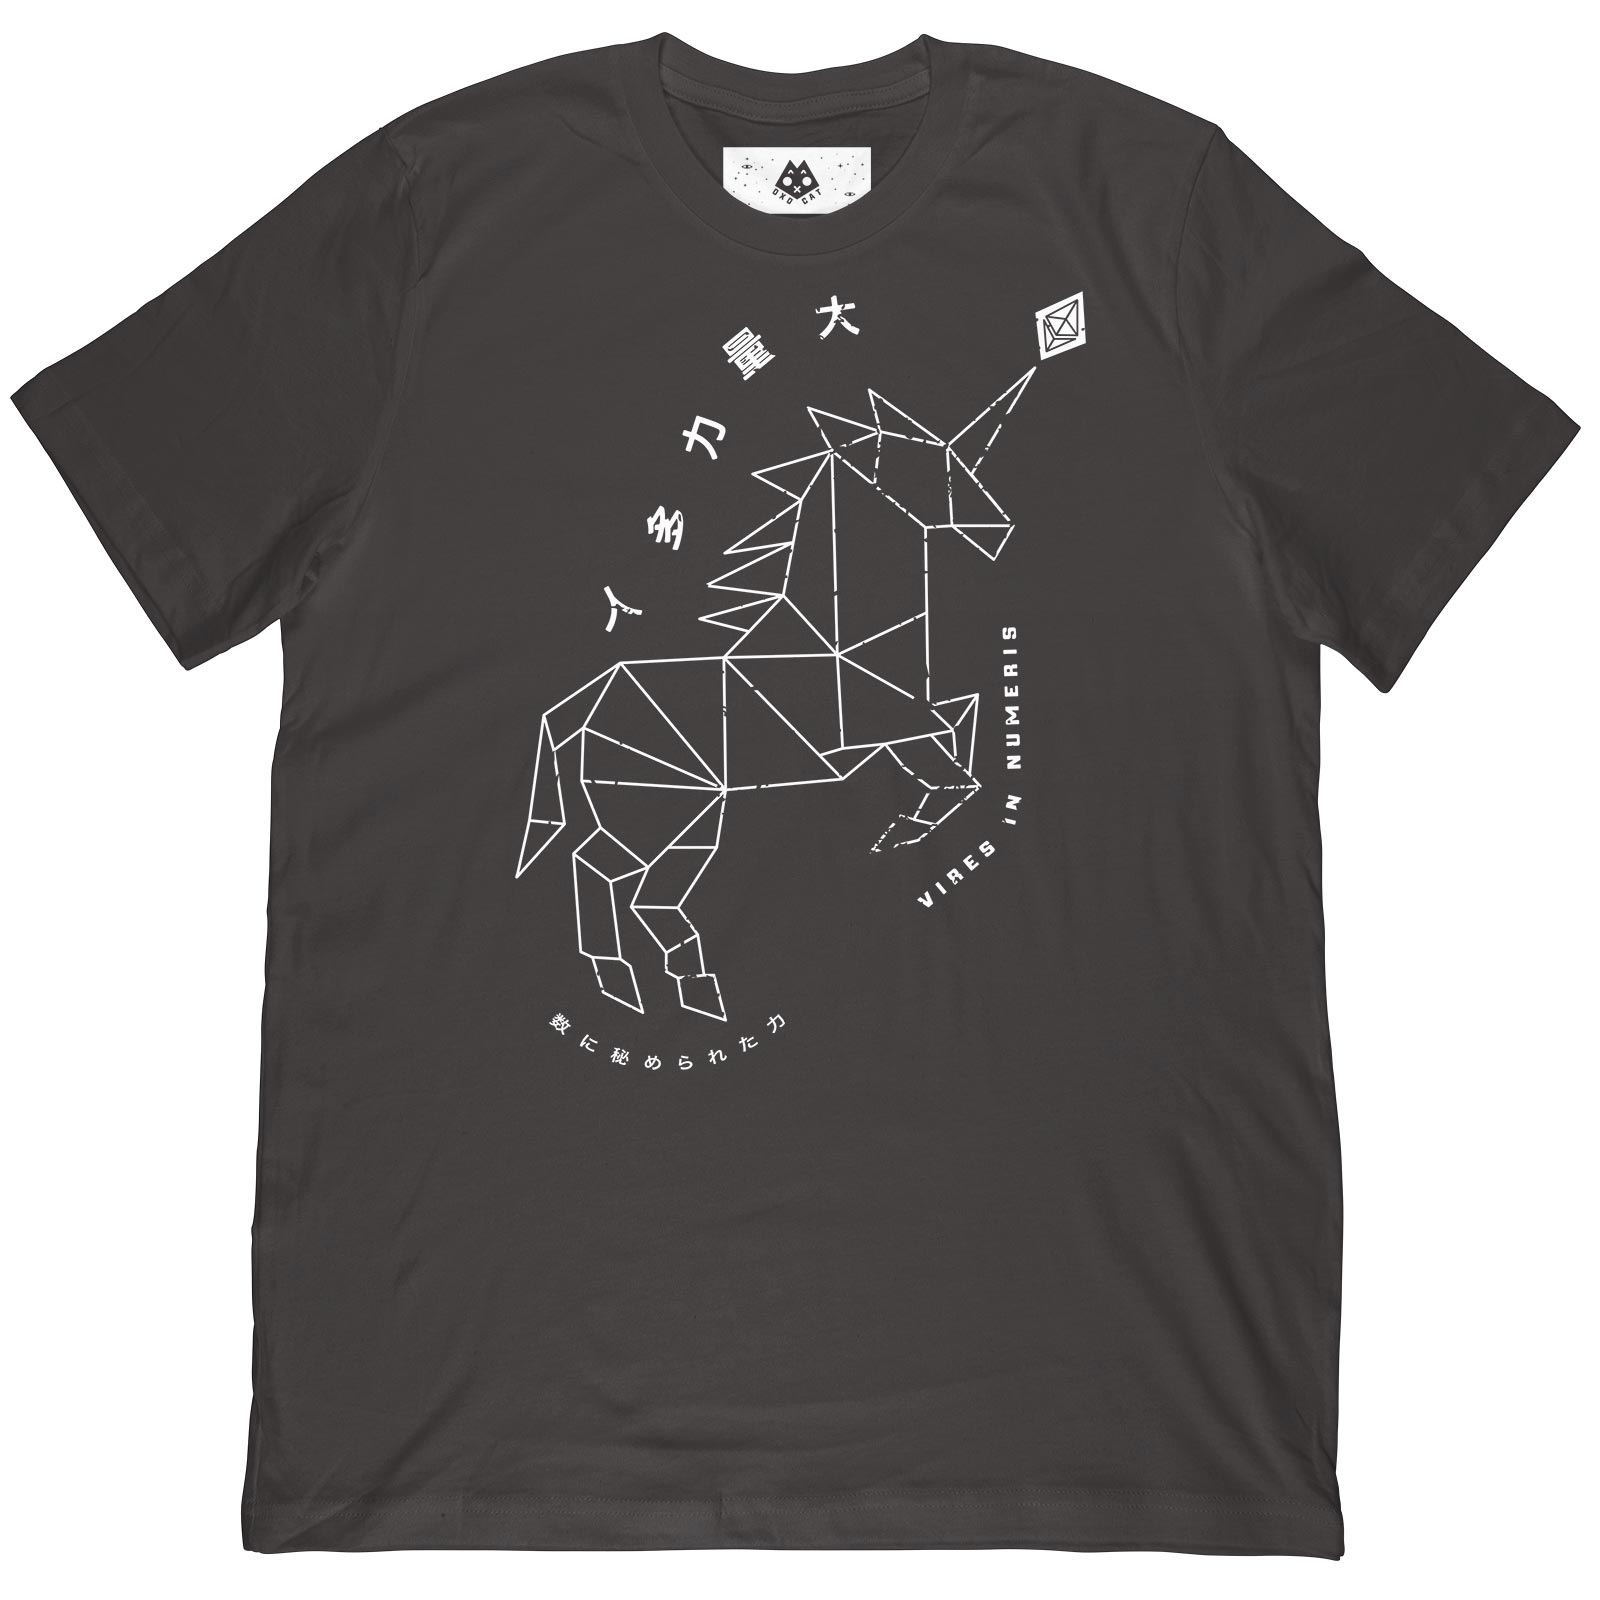 Front print unicorn with 'strength in numbers' visible in several languages. 0X0CAT print on the back.